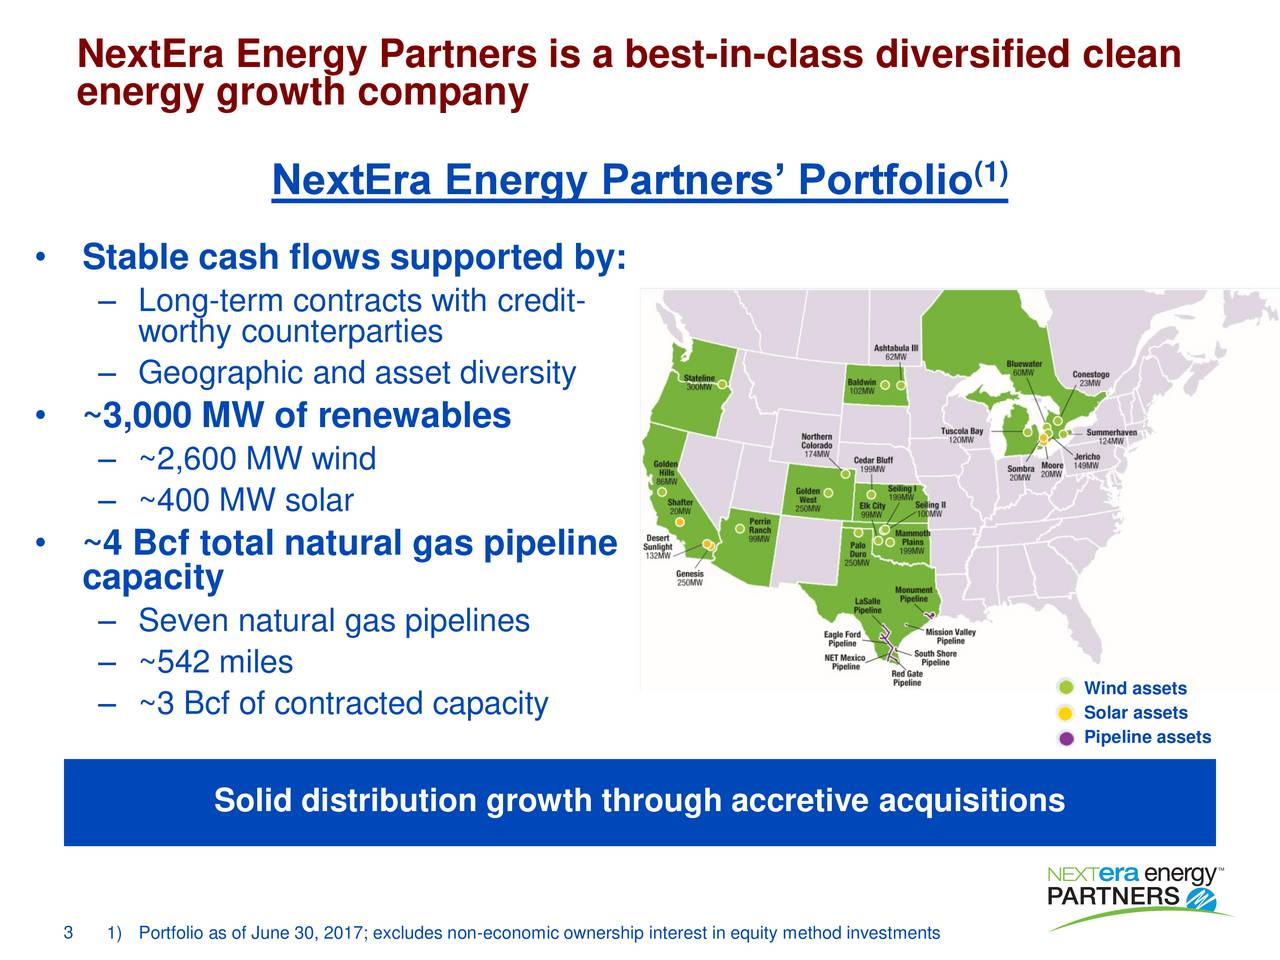 energy growth company (1) NextEra Energy Partners Portfolio Stable cash flows supported by: Long-term contracts with credit- worthy counterparties Geographic and asset diversity ~3,000 MW of renewables ~2,600 MW wind ~400 MW solar ~4 Bcf total natural gas pipeline capacity Seven natural gas pipelines ~542 miles ~3 Bcf of contracted capacity  Solar assets Pipeline assets Solid distribution growth through accretive acquisitions 3 1)Portfolio as of June 30, 2017; excludes non-economic ownership interest in equity method investments